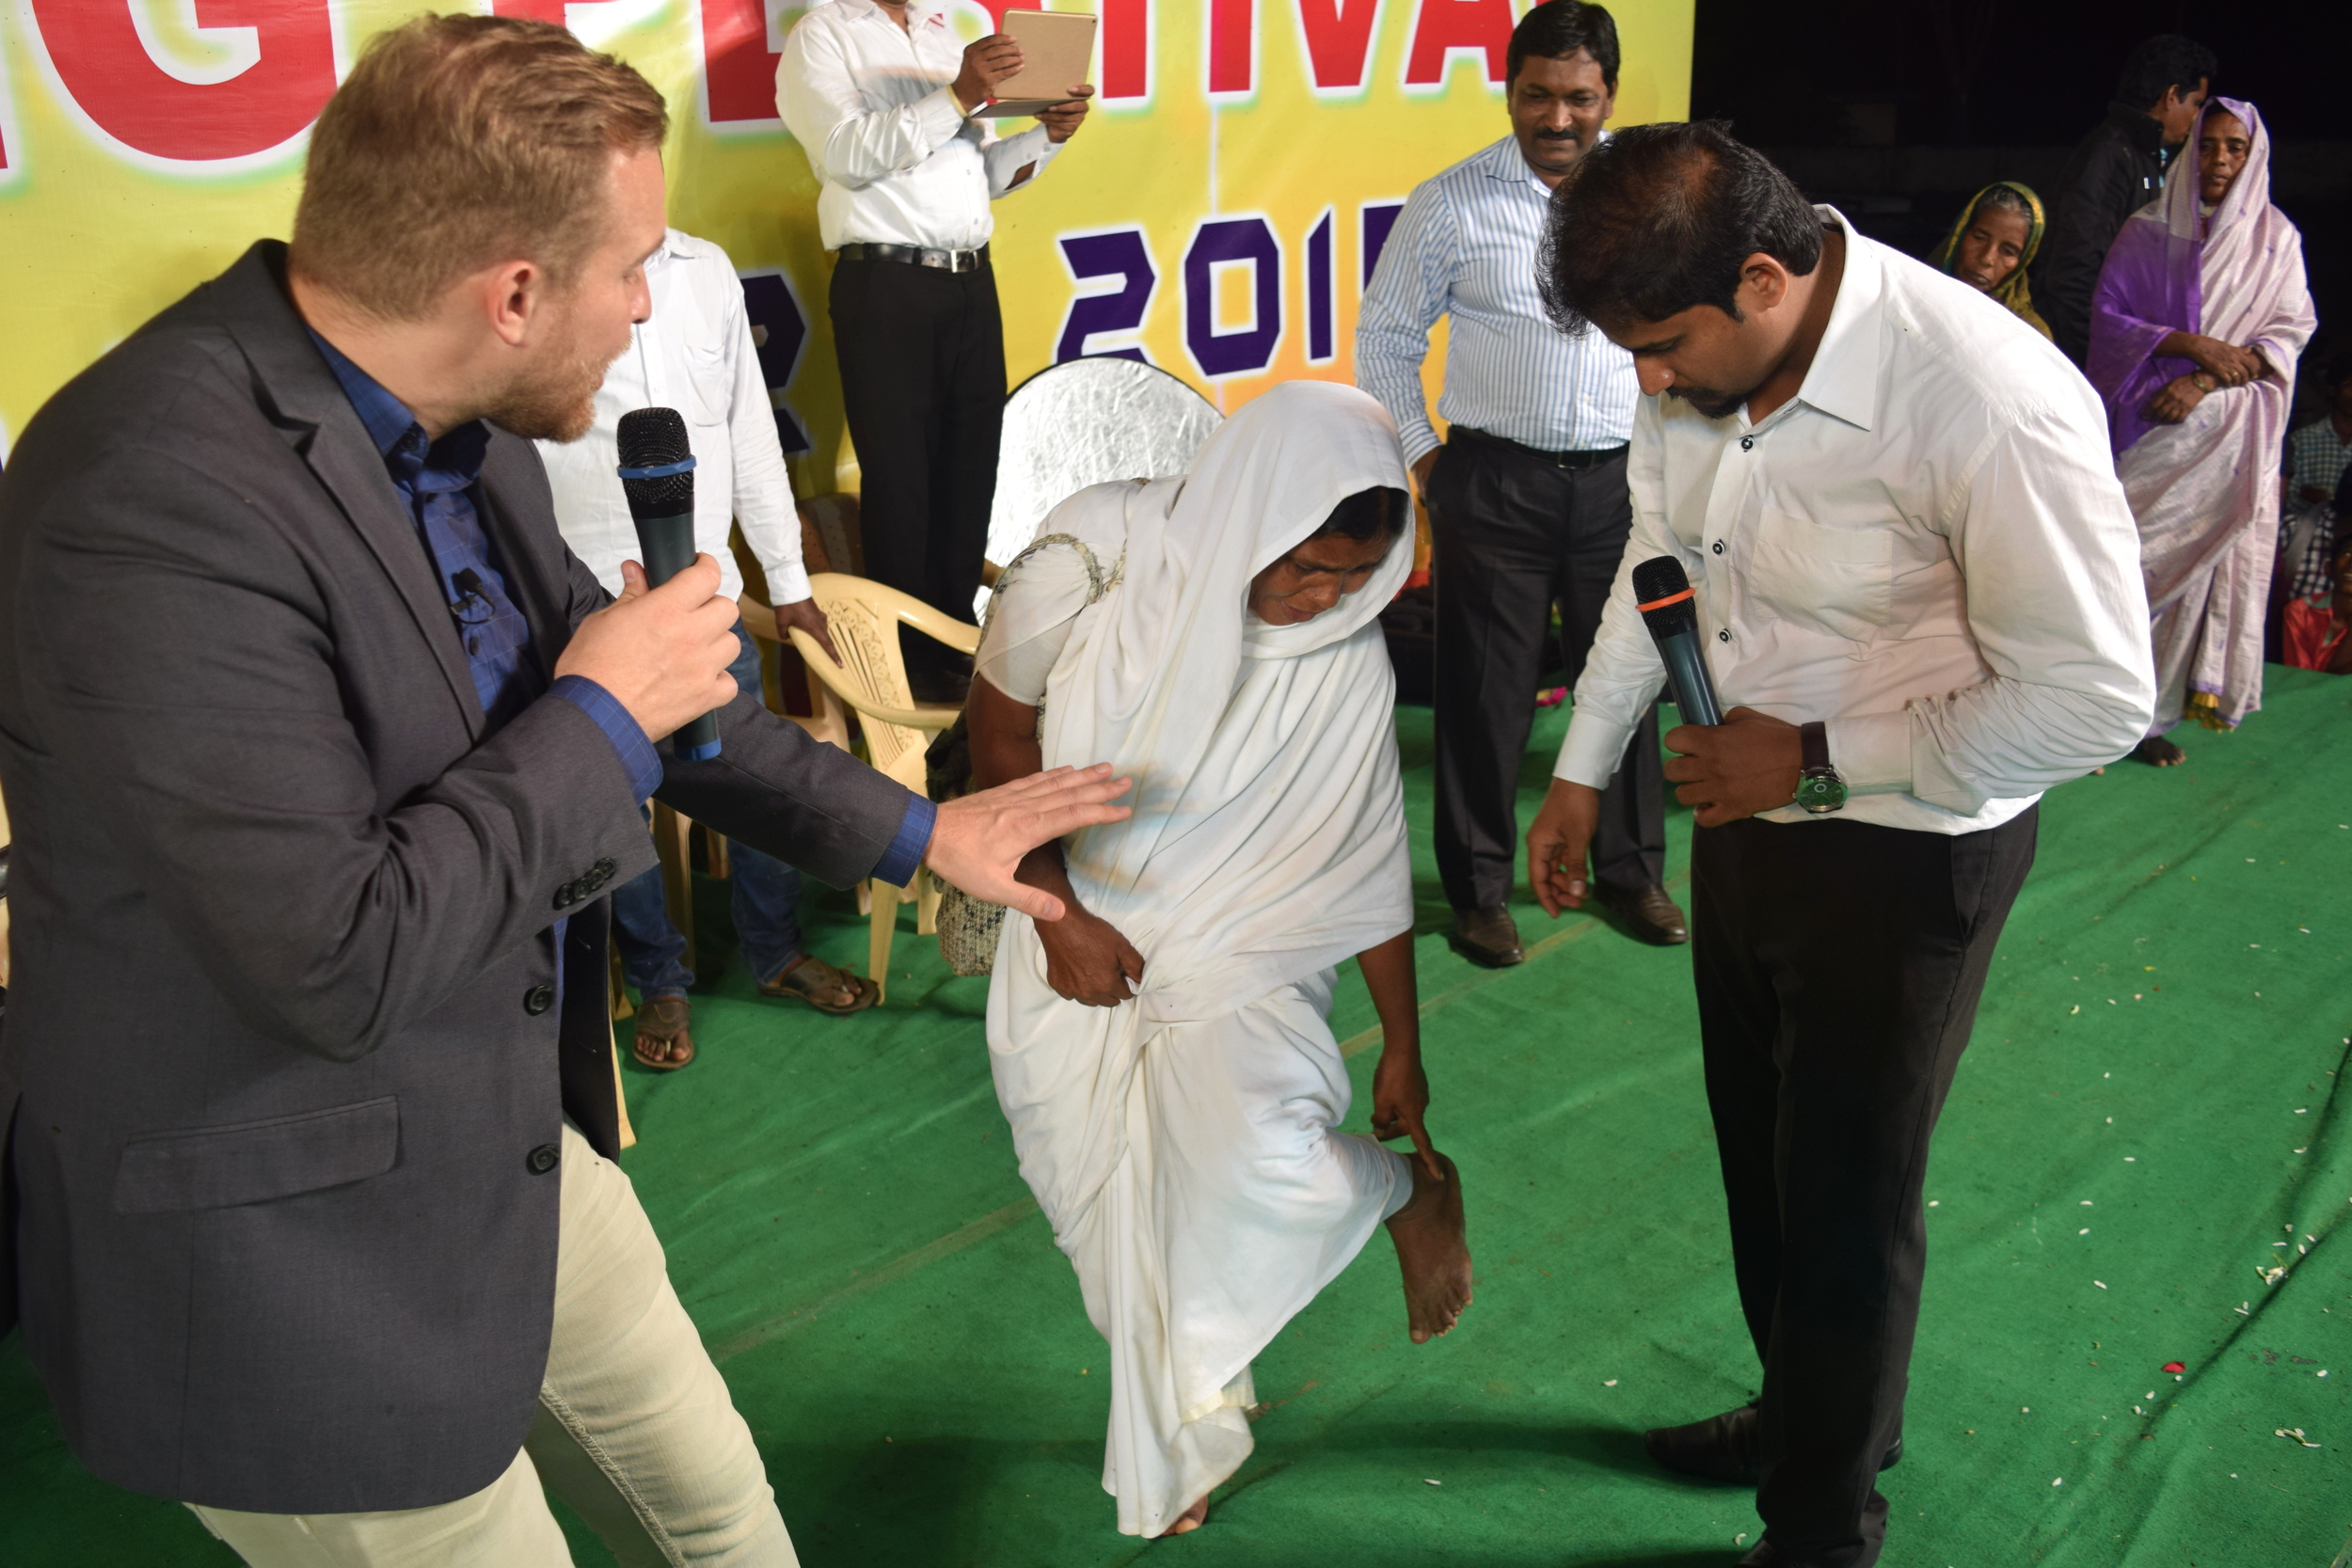 Jesus healed this woman's broken leg and now all the pain is gone!